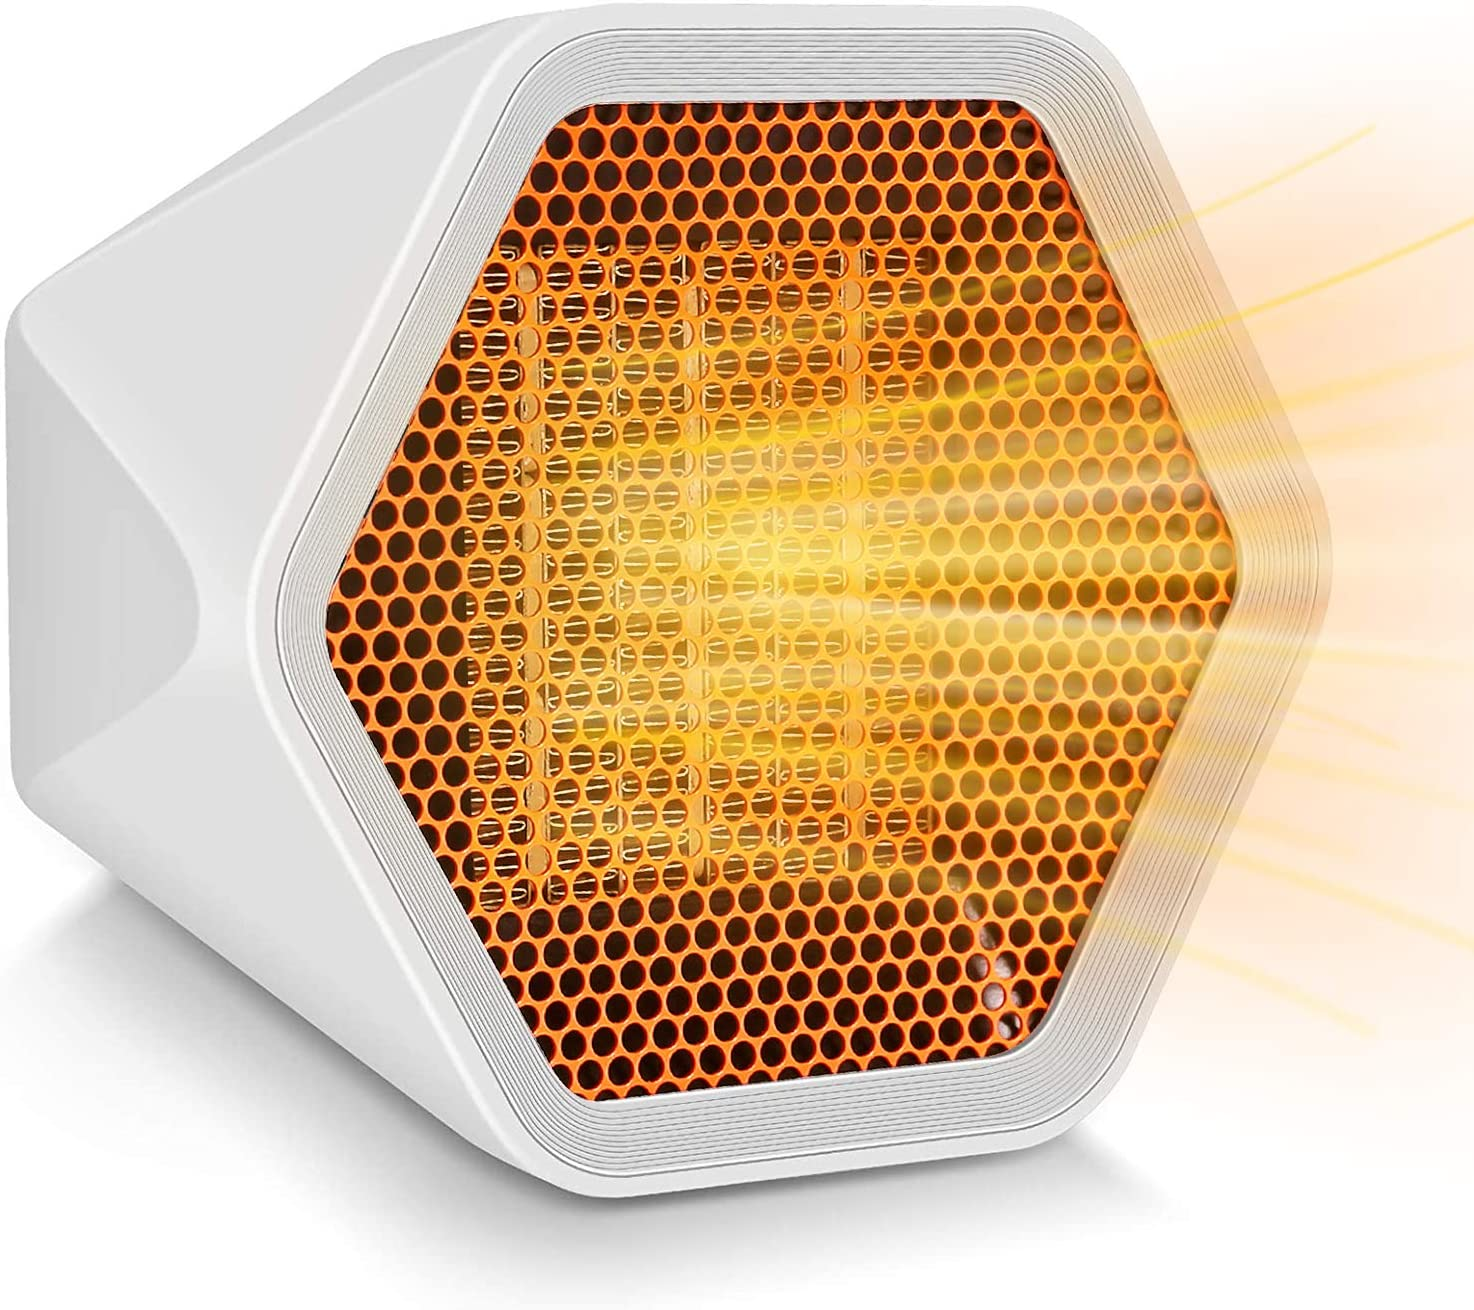 Sorlakar Eletric Space Heater,1000W Small Heater Ceramic Space Heater with Overheat Protection,Heat Up in Minutes for Home Office Floor or Desktop (Modern White)